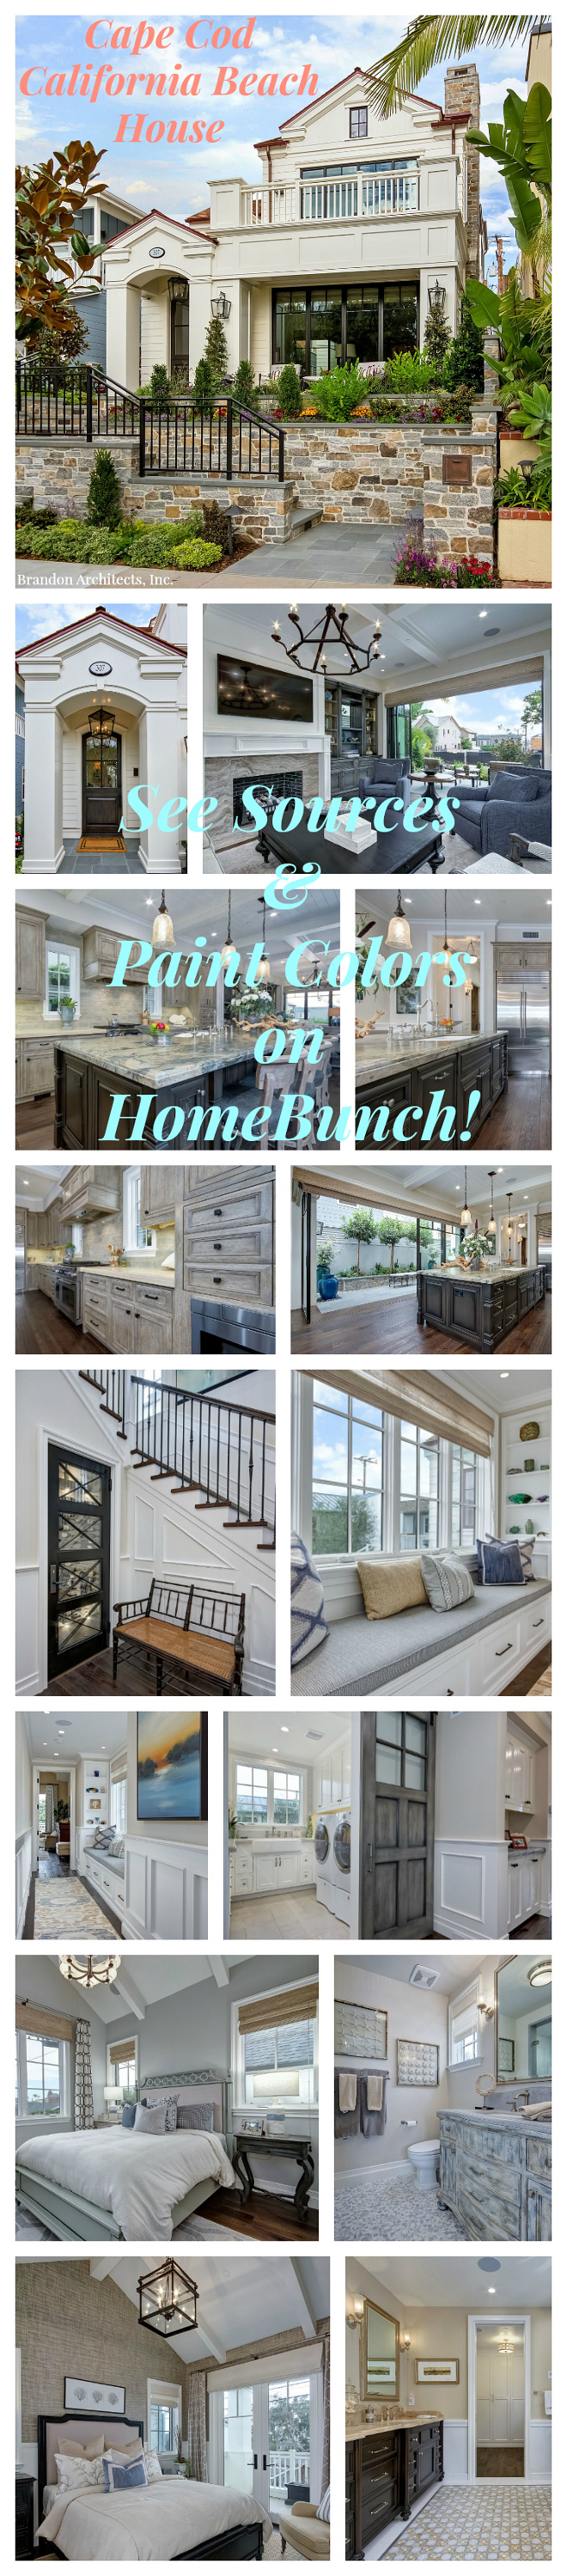 Cape Cod California Beach House. Cape Cod California Beach House #CapeCod #California #BeachHouse More details on Home Bunch